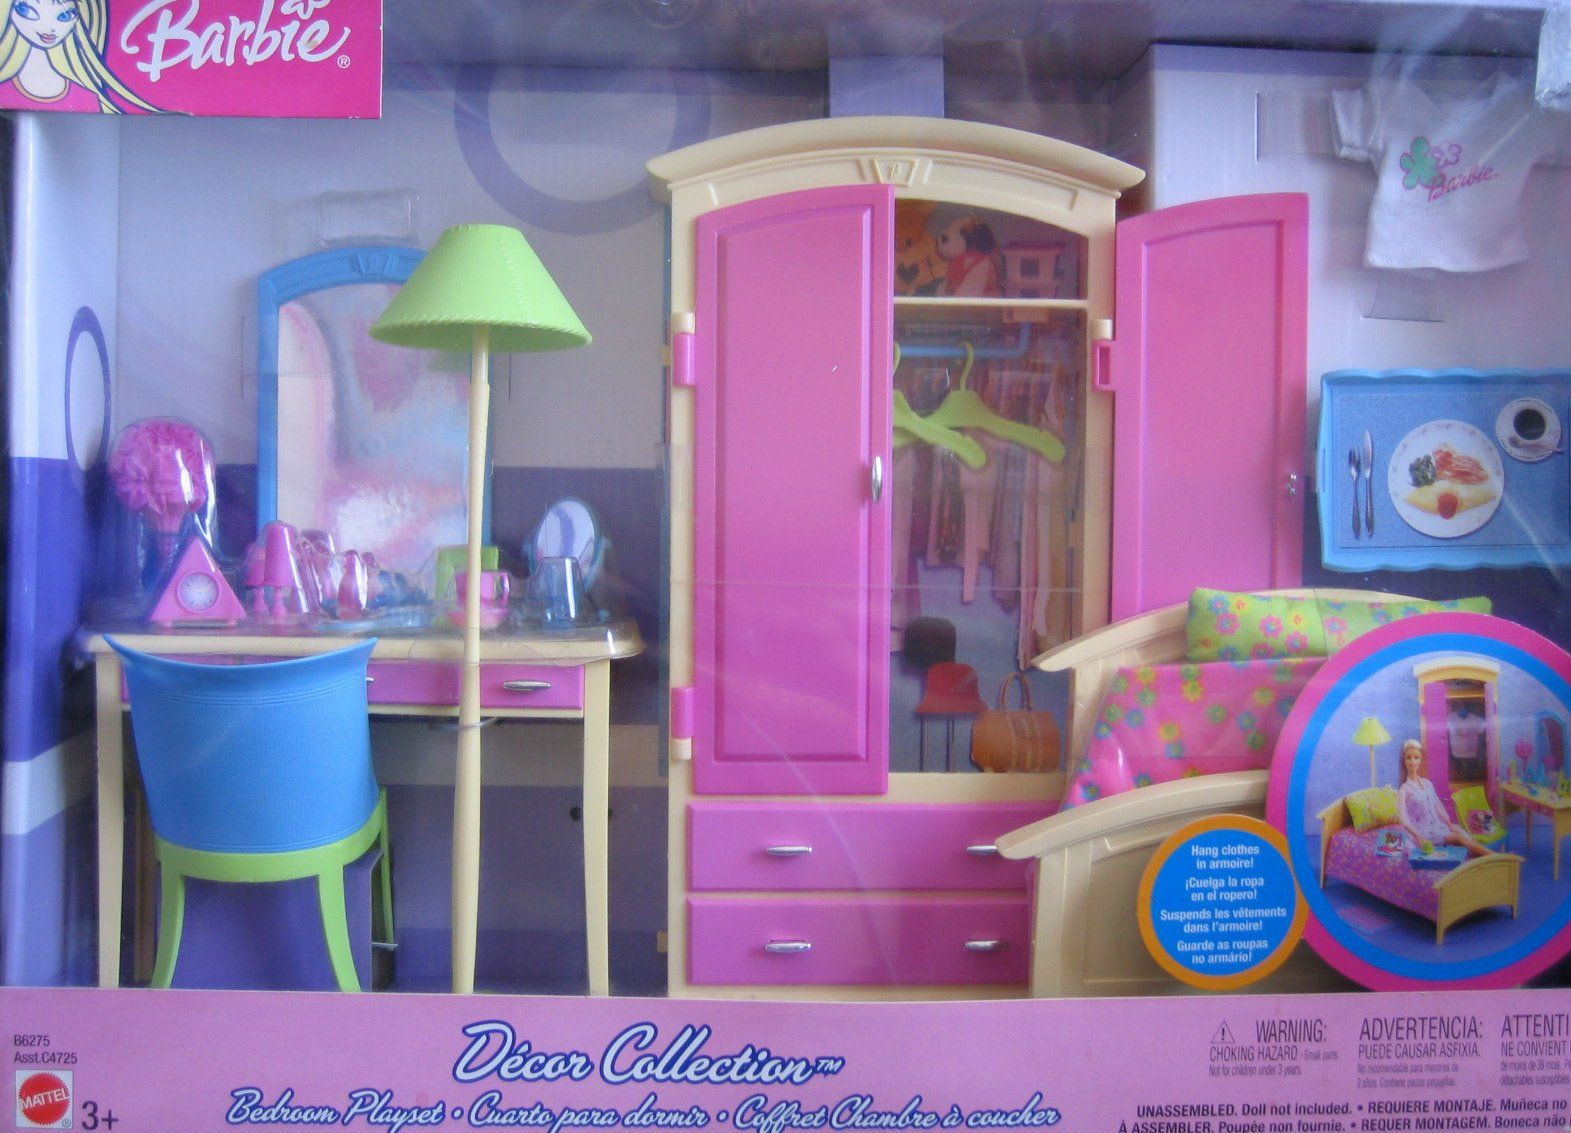 Barbie Decor Collection BEDROOM Playset